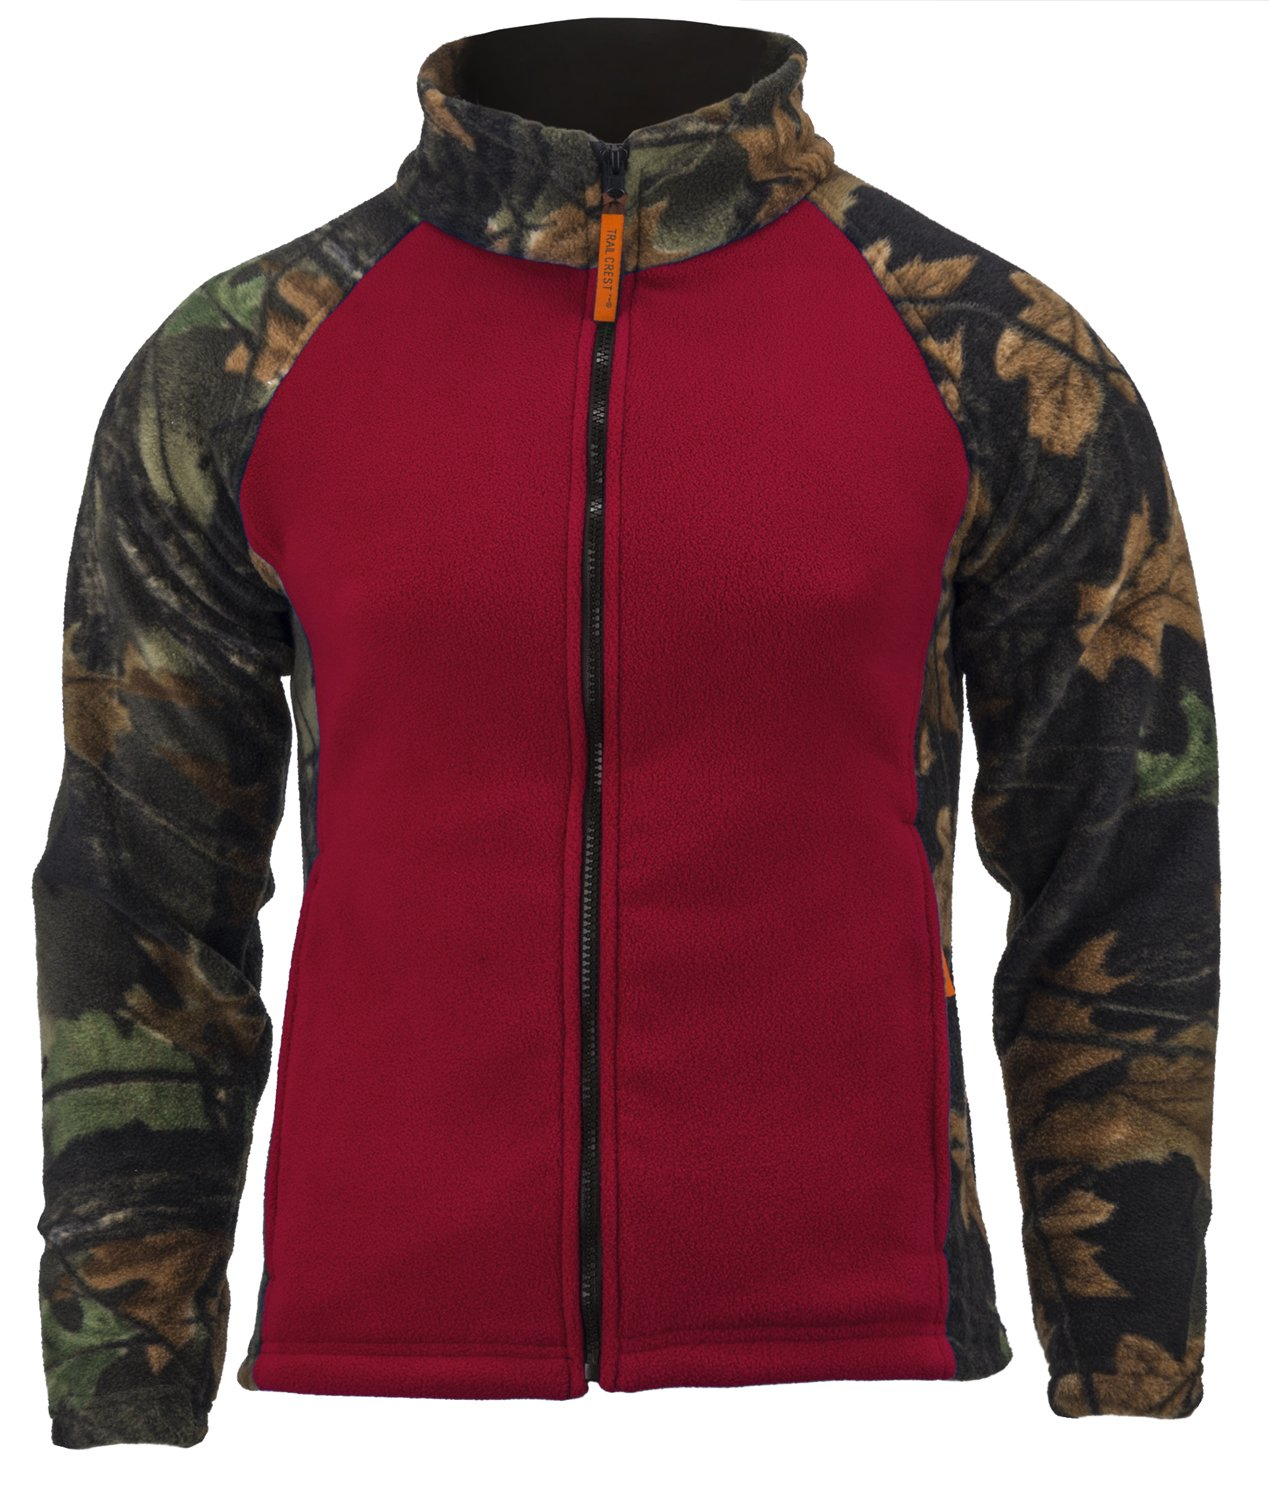 Trailcrest Women's Camo Chambliss Semi Fitted Jacket, Burgundy, Large